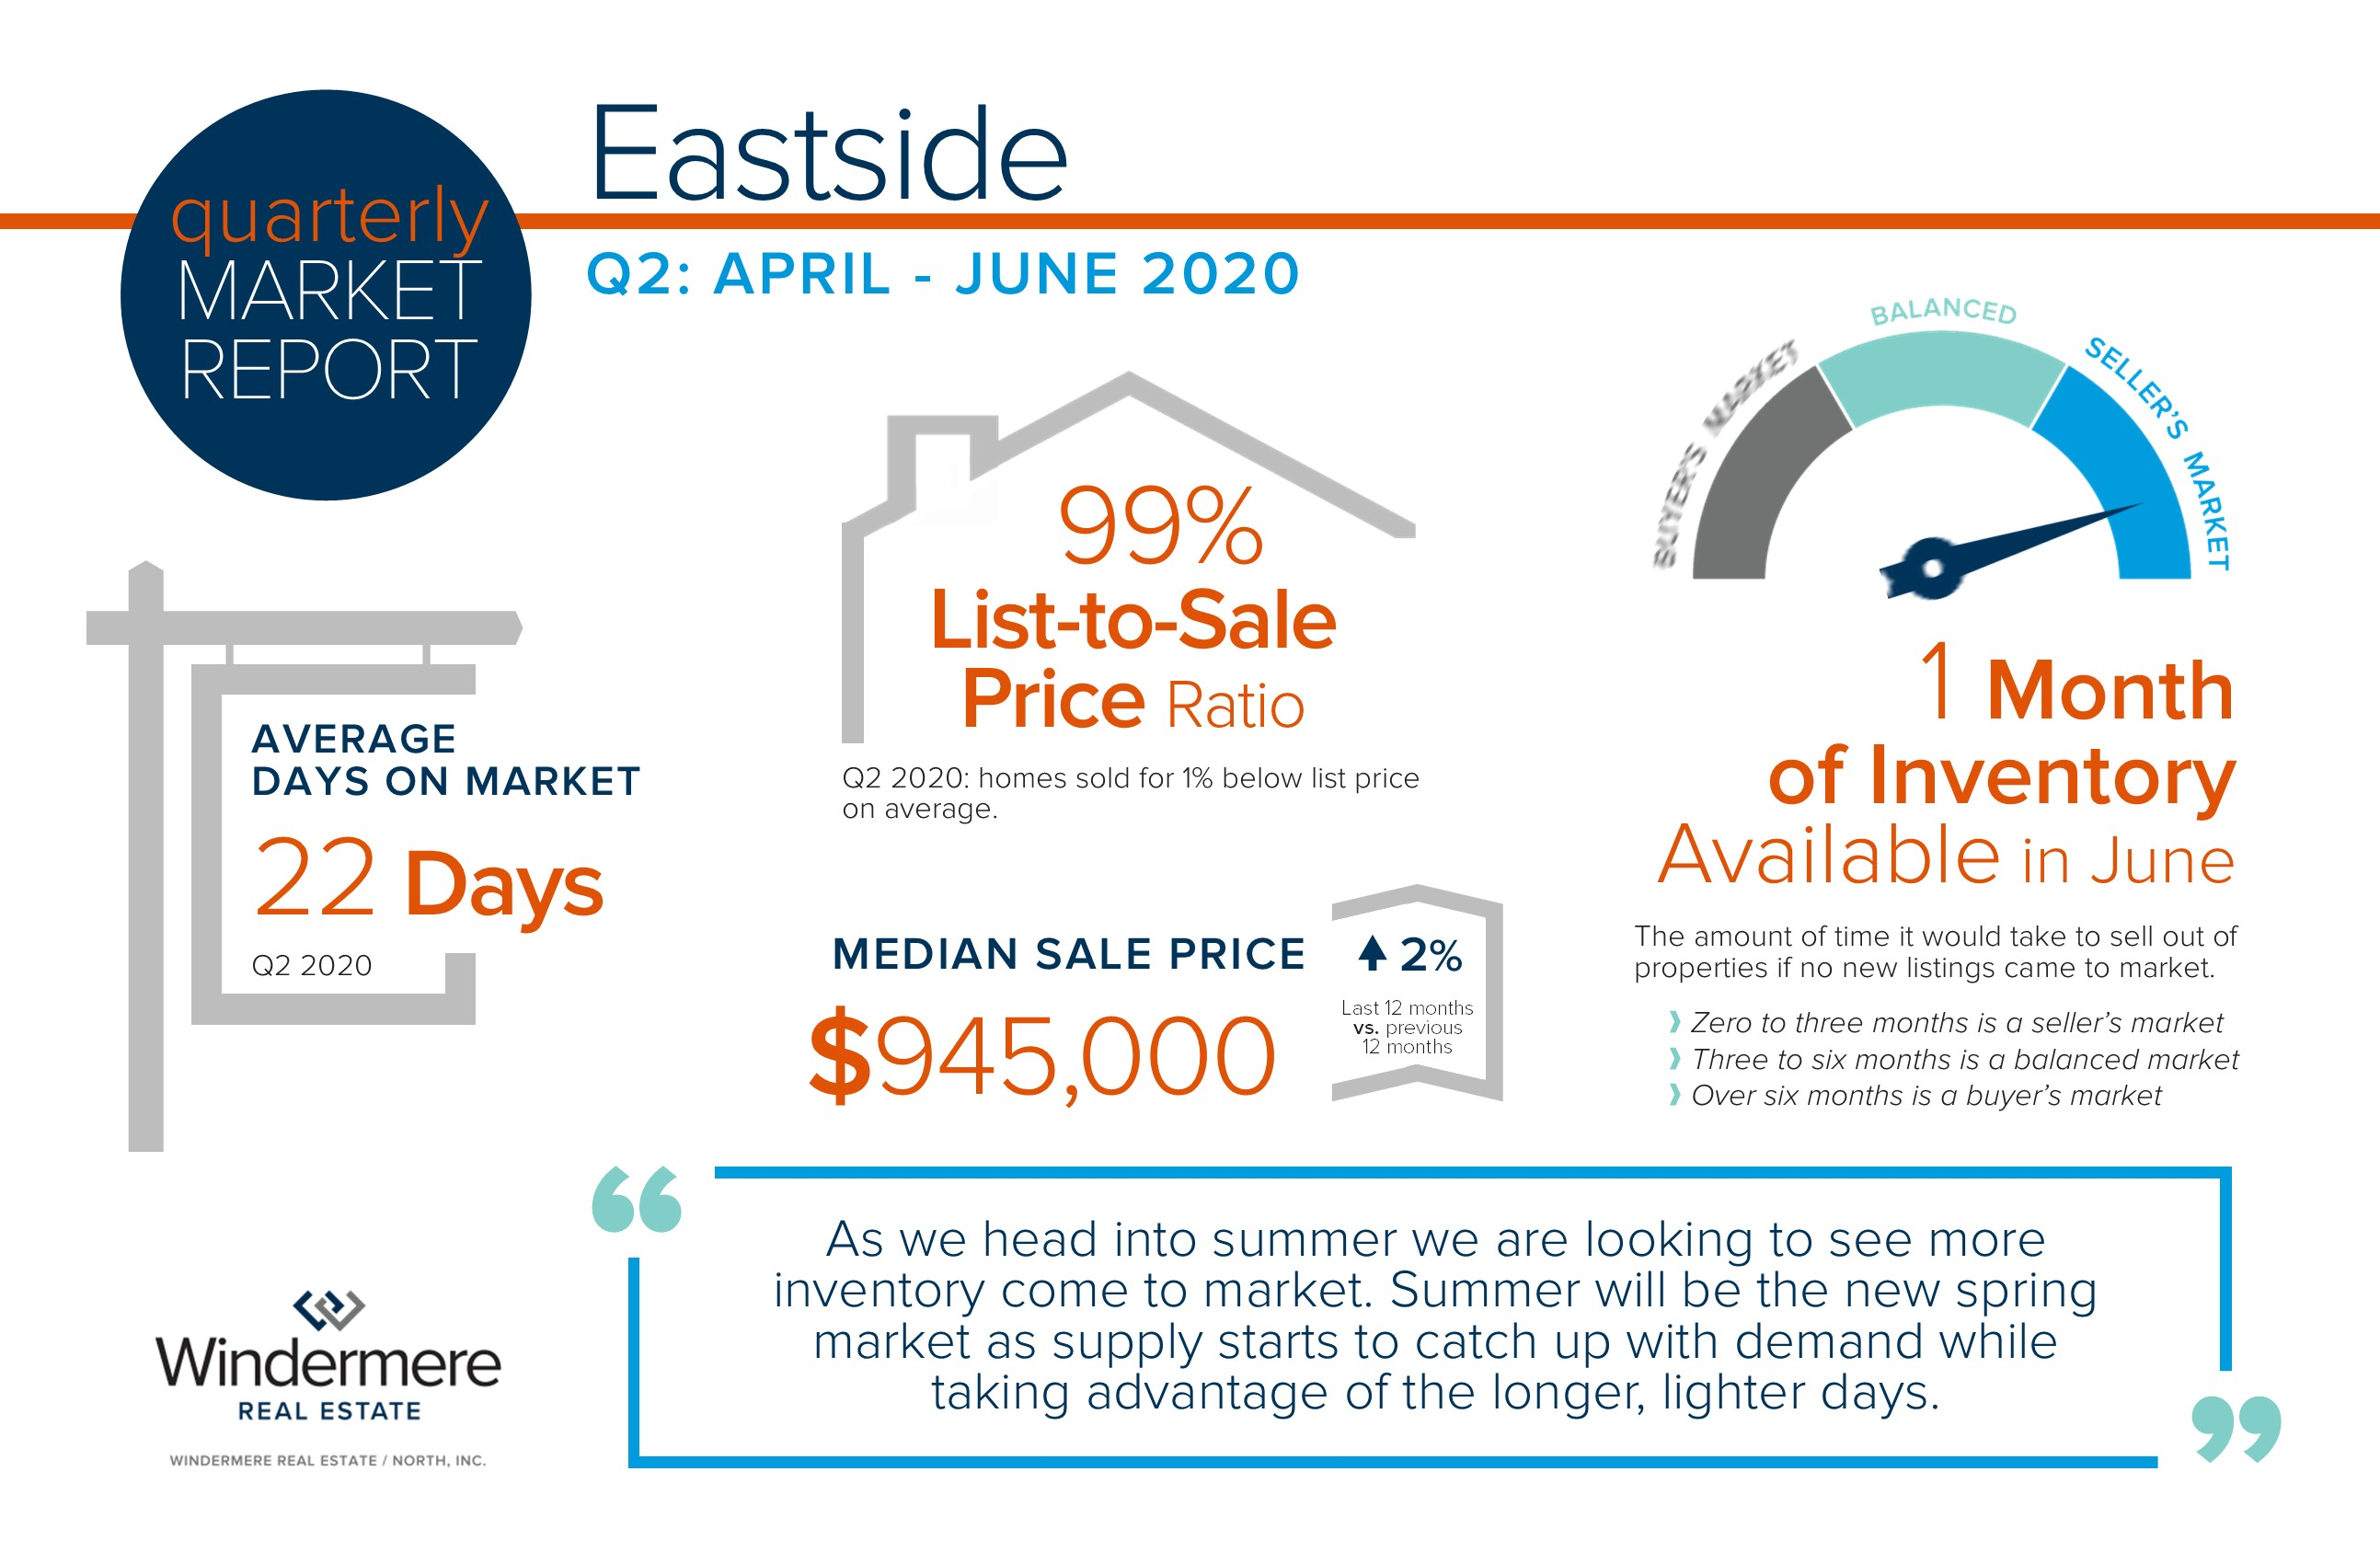 2020 Q2 Eastside BLOG Image.jpg